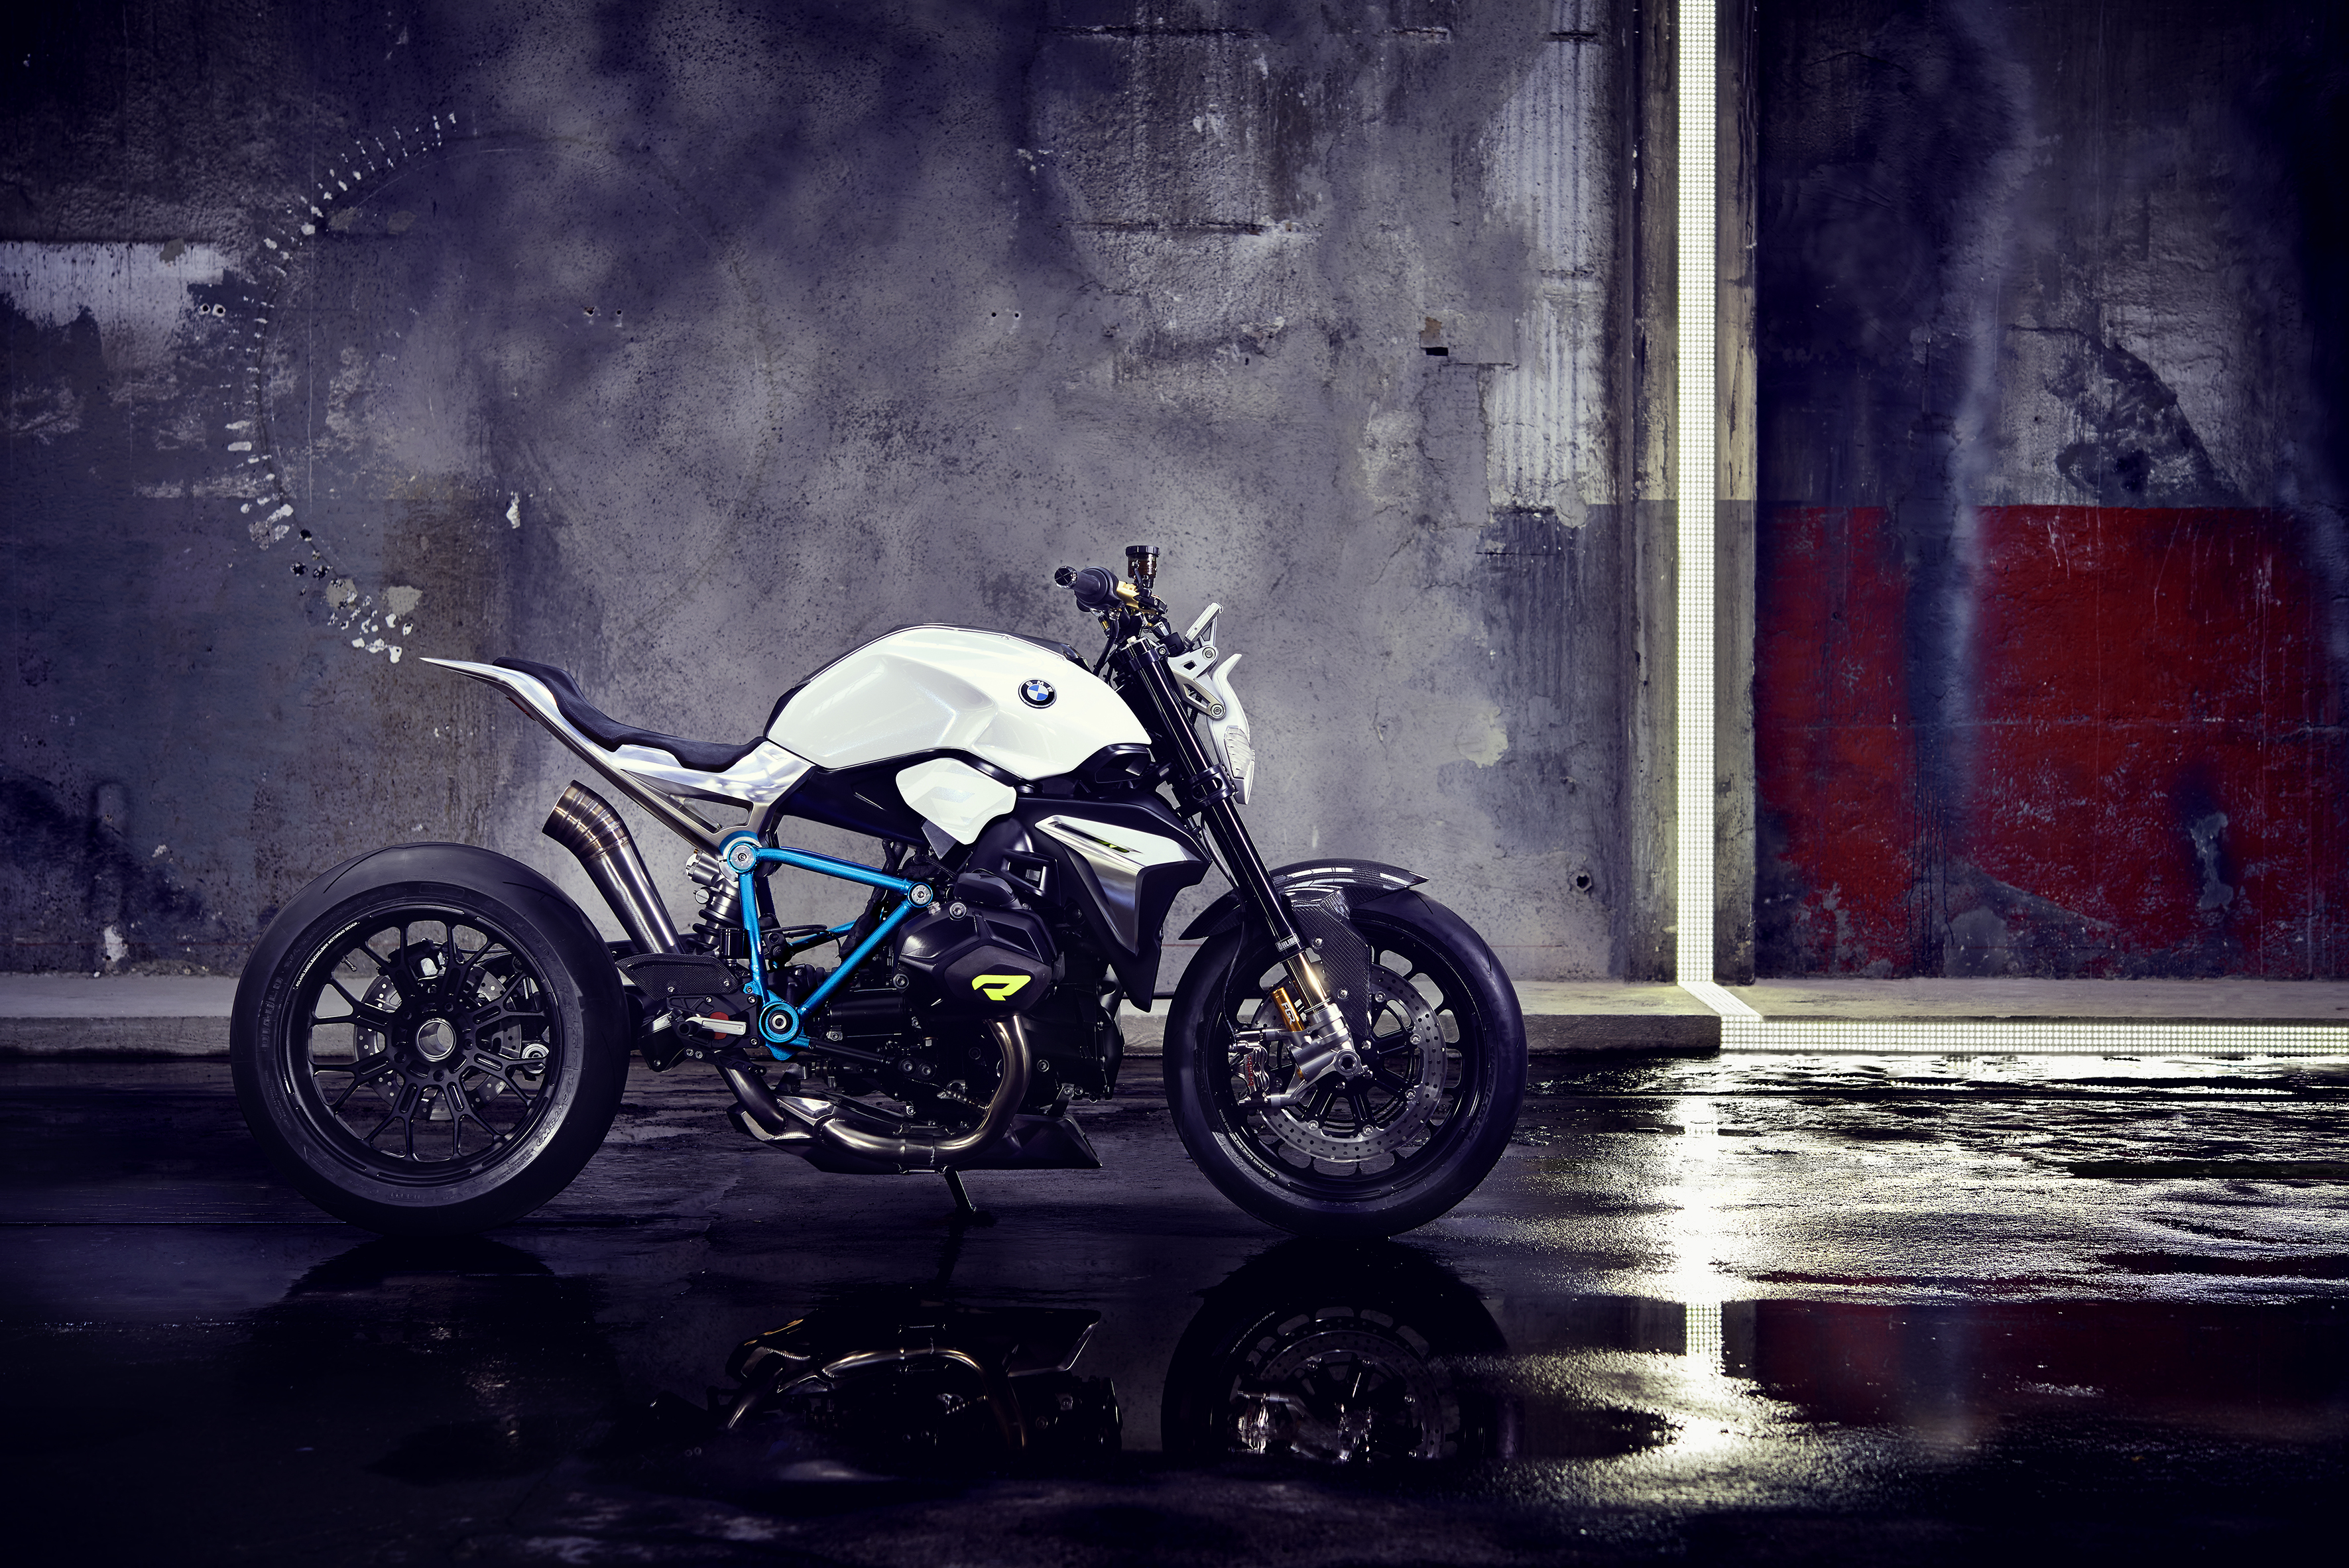 71115 Extraordinary Bmw R 1200 R Street Fighter Cars Trend